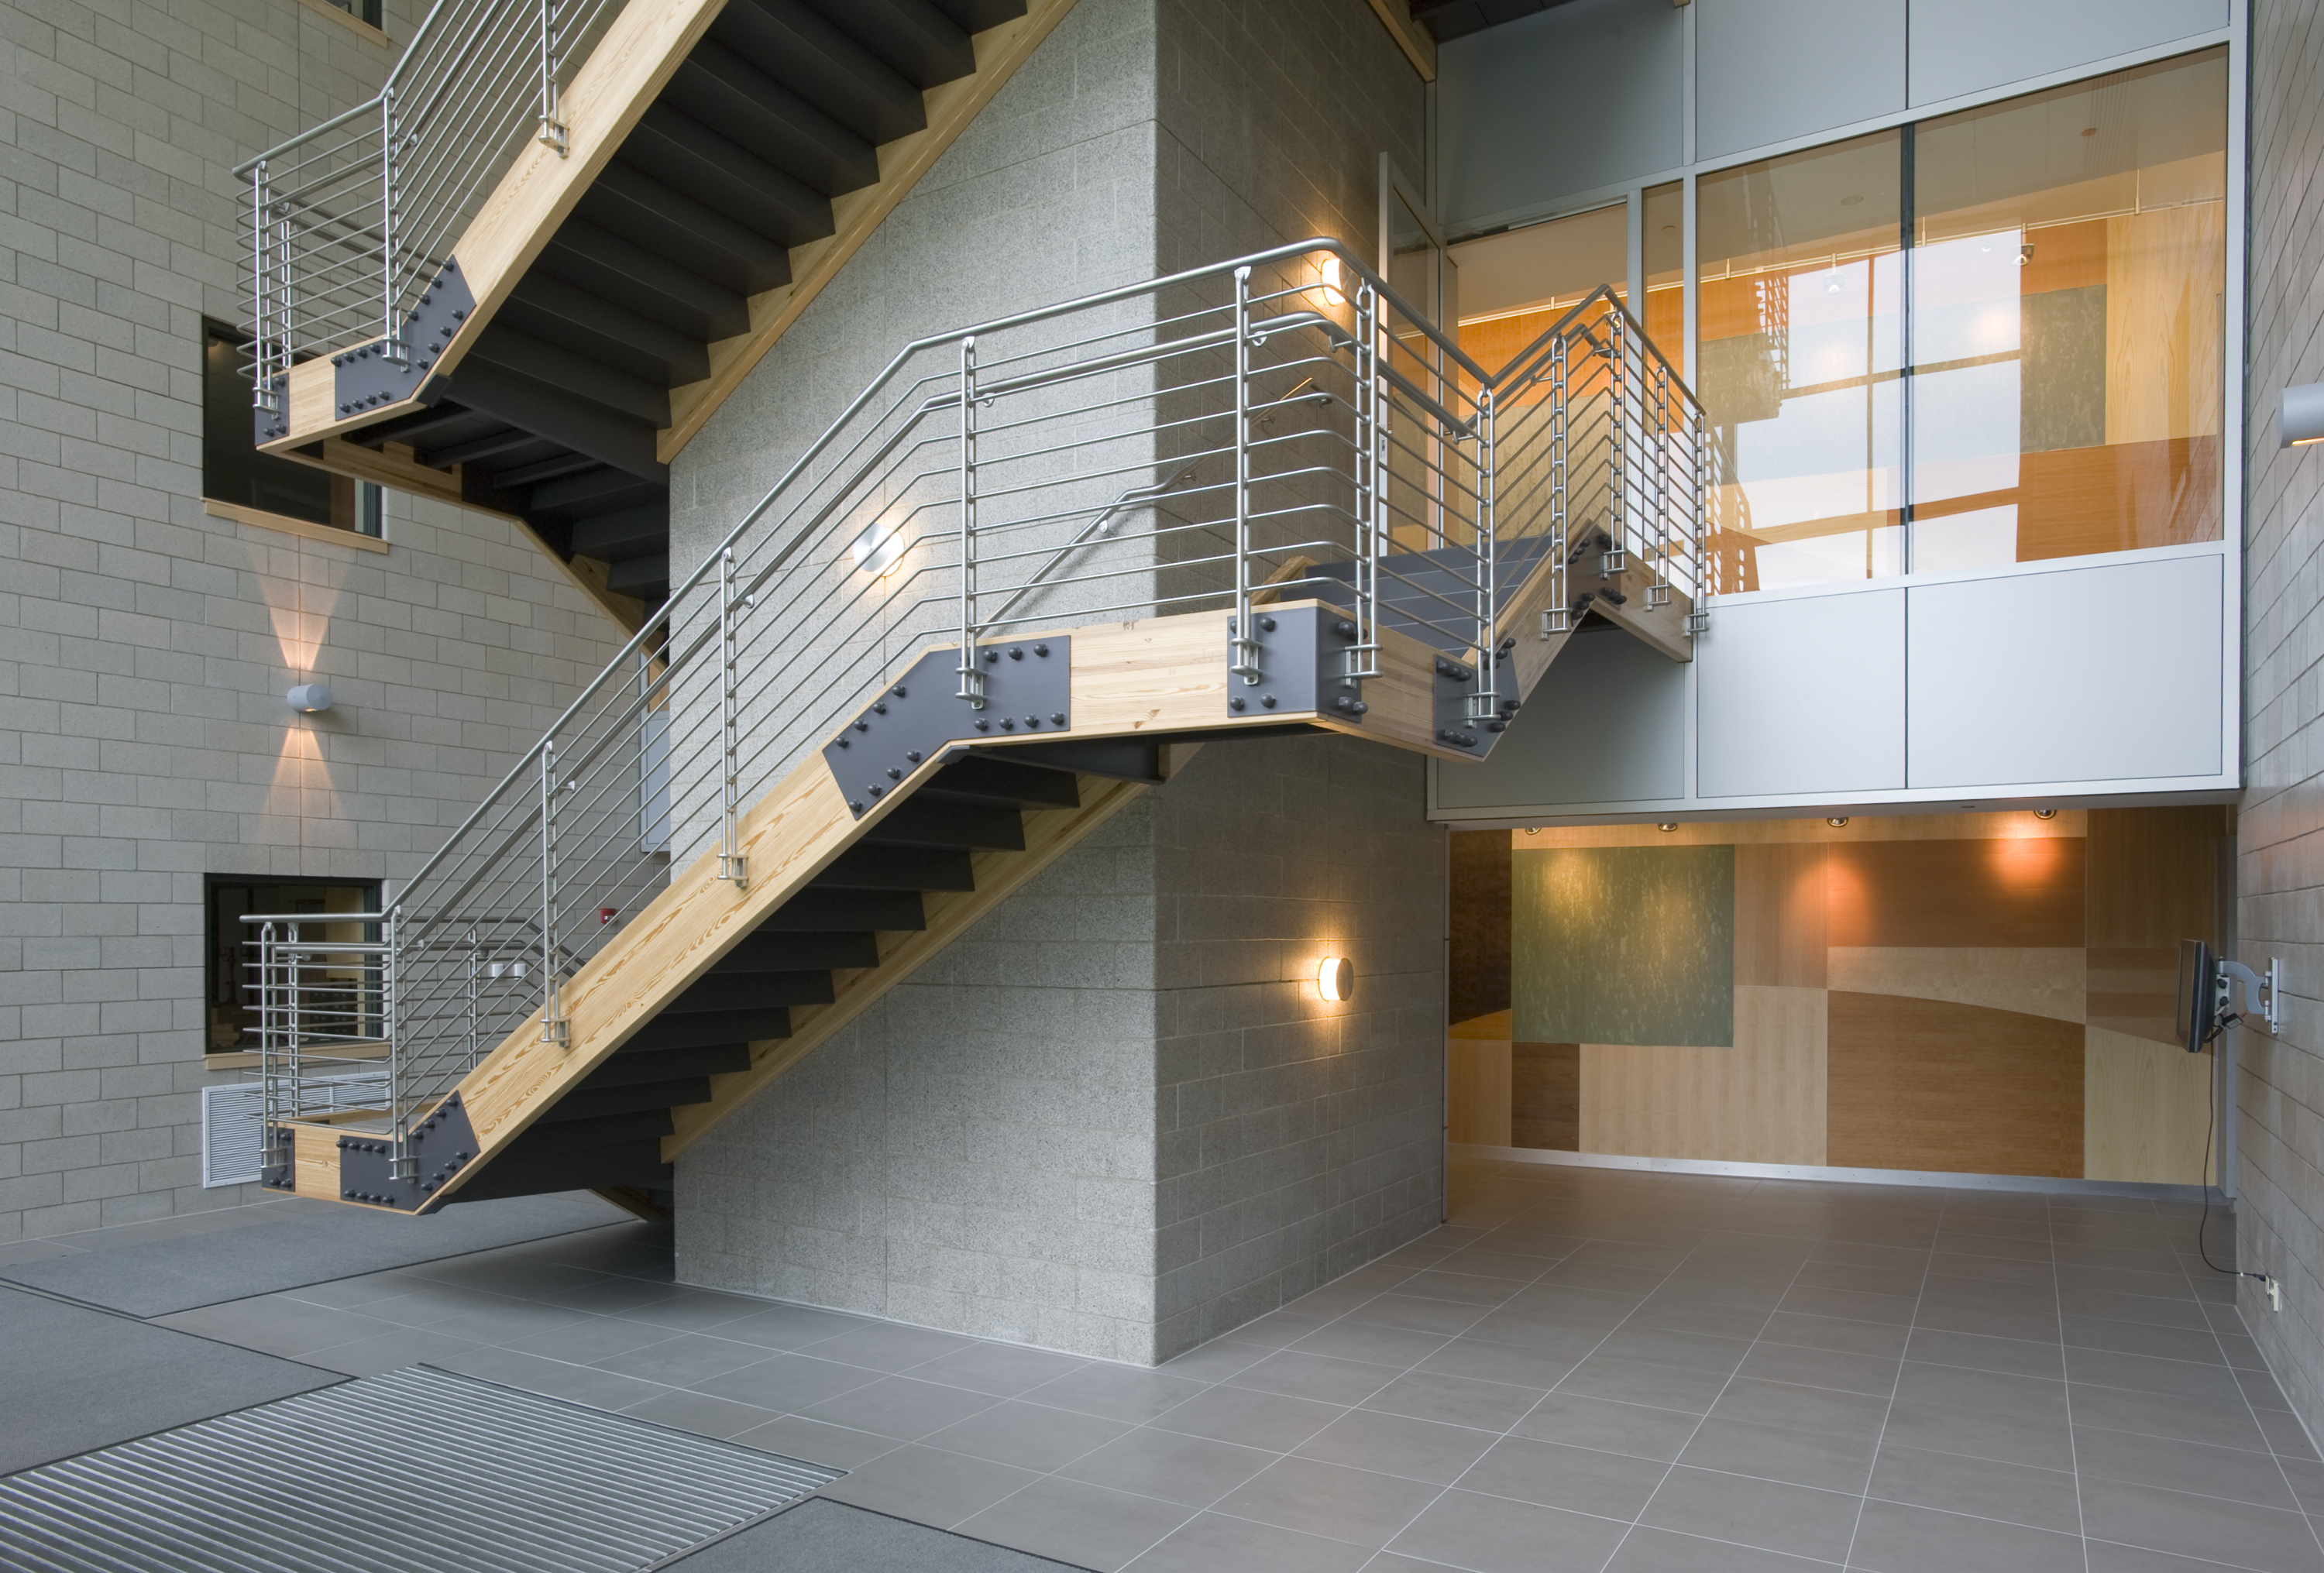 John P. Stopen Baker Hall SUNY ESF Project interior stairwell